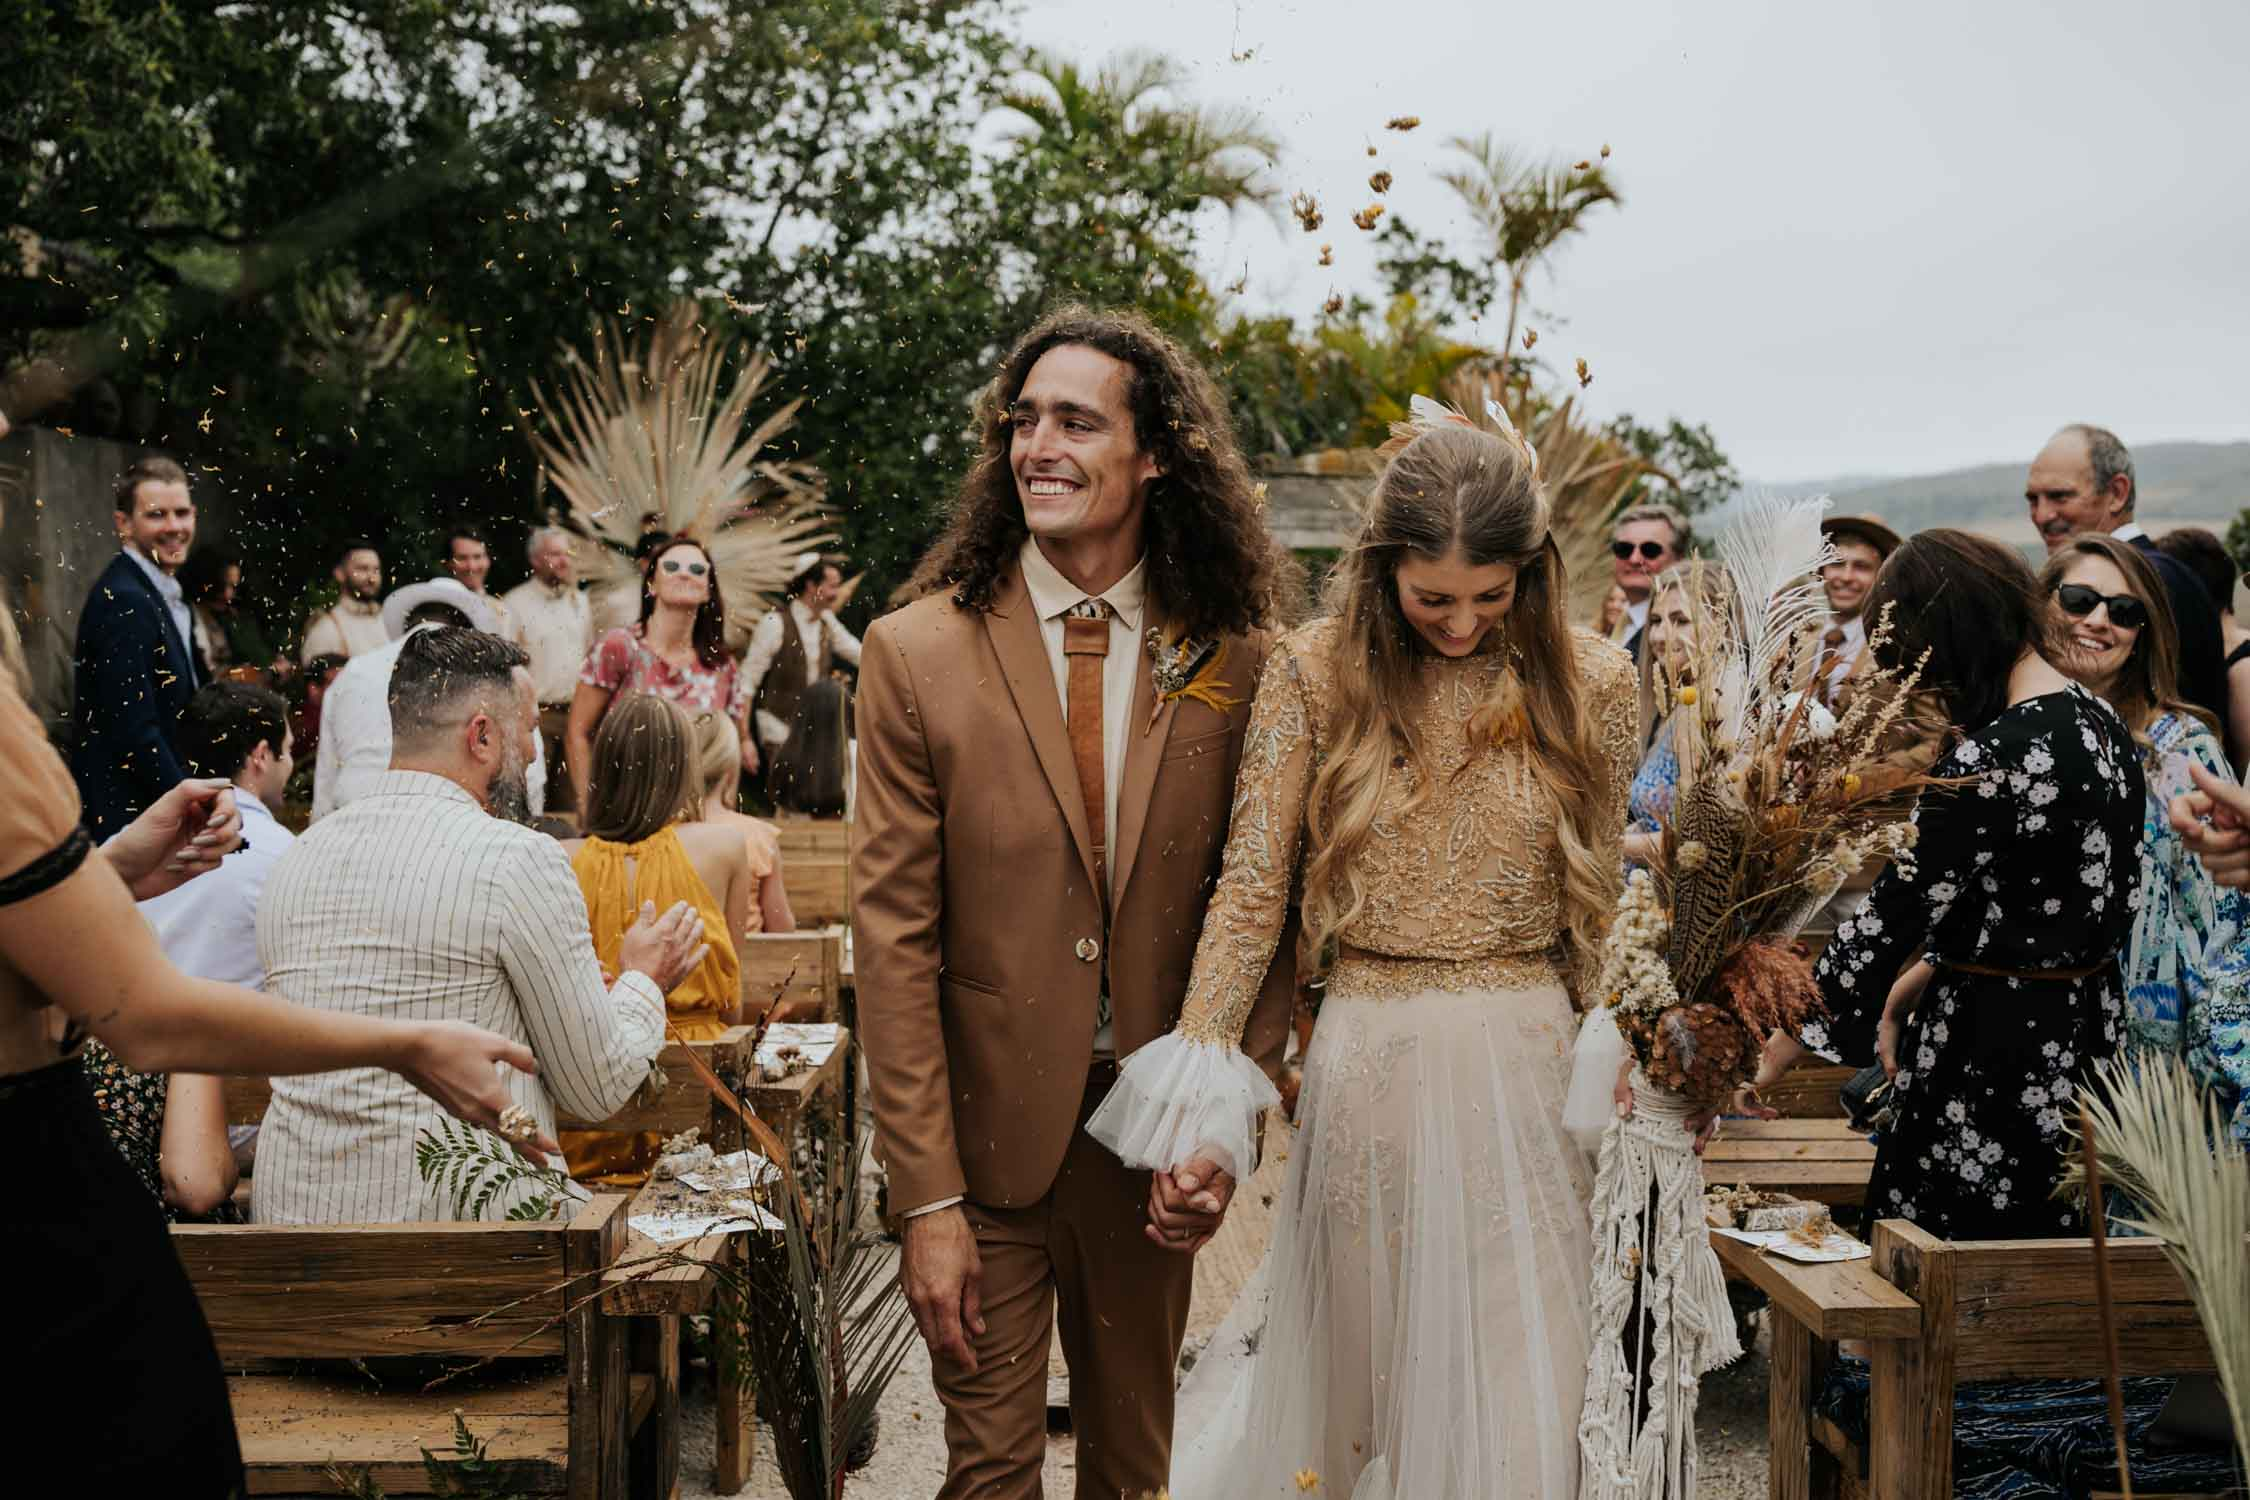 Joyful and fun wedding confetti toss with dried flowers and feather at bohemian wedding at Emily Moon River Lodge in Plett